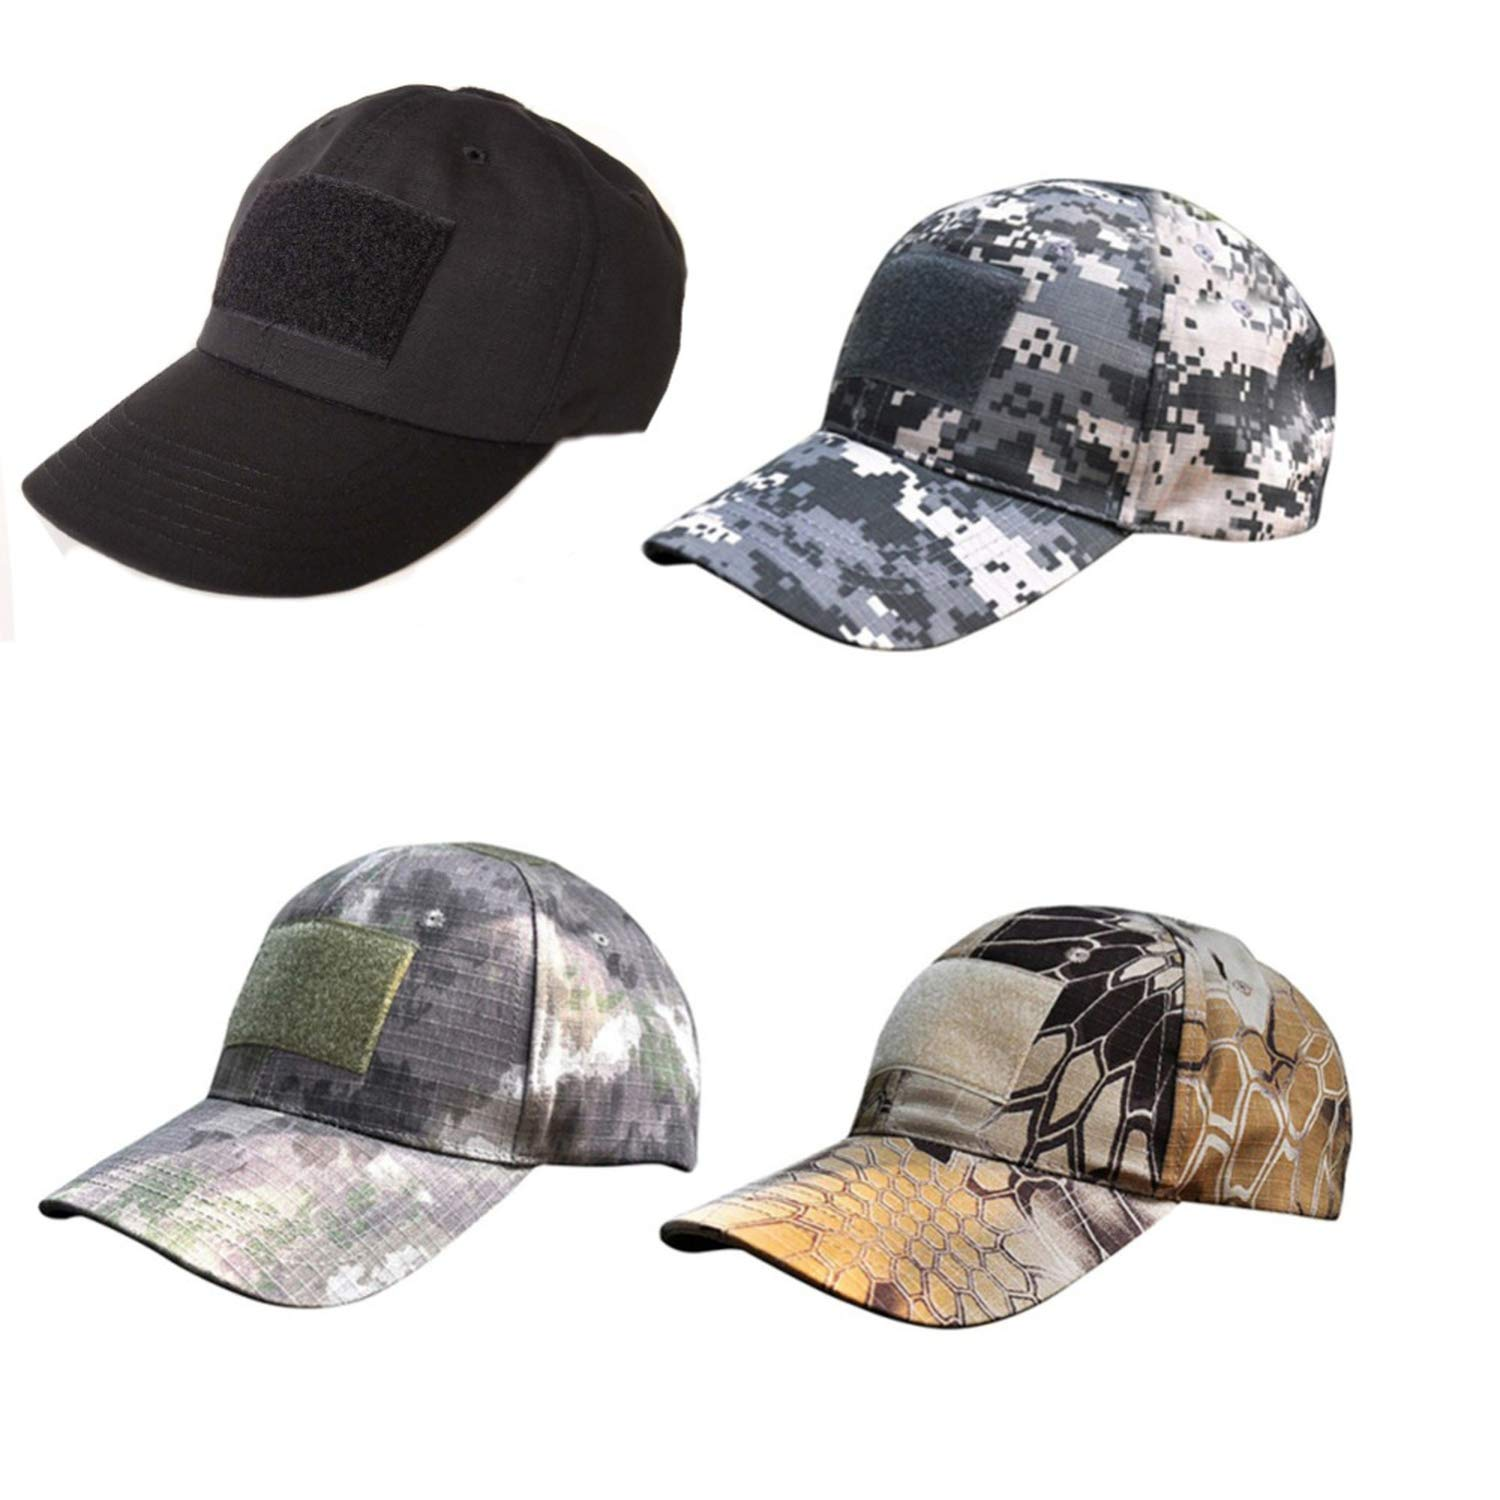 CHENTAI Camouflage Flag Patch Baseball Cap Men Outdoor Sporting Caps Tactical Nylon Fastener Tape Design Hats